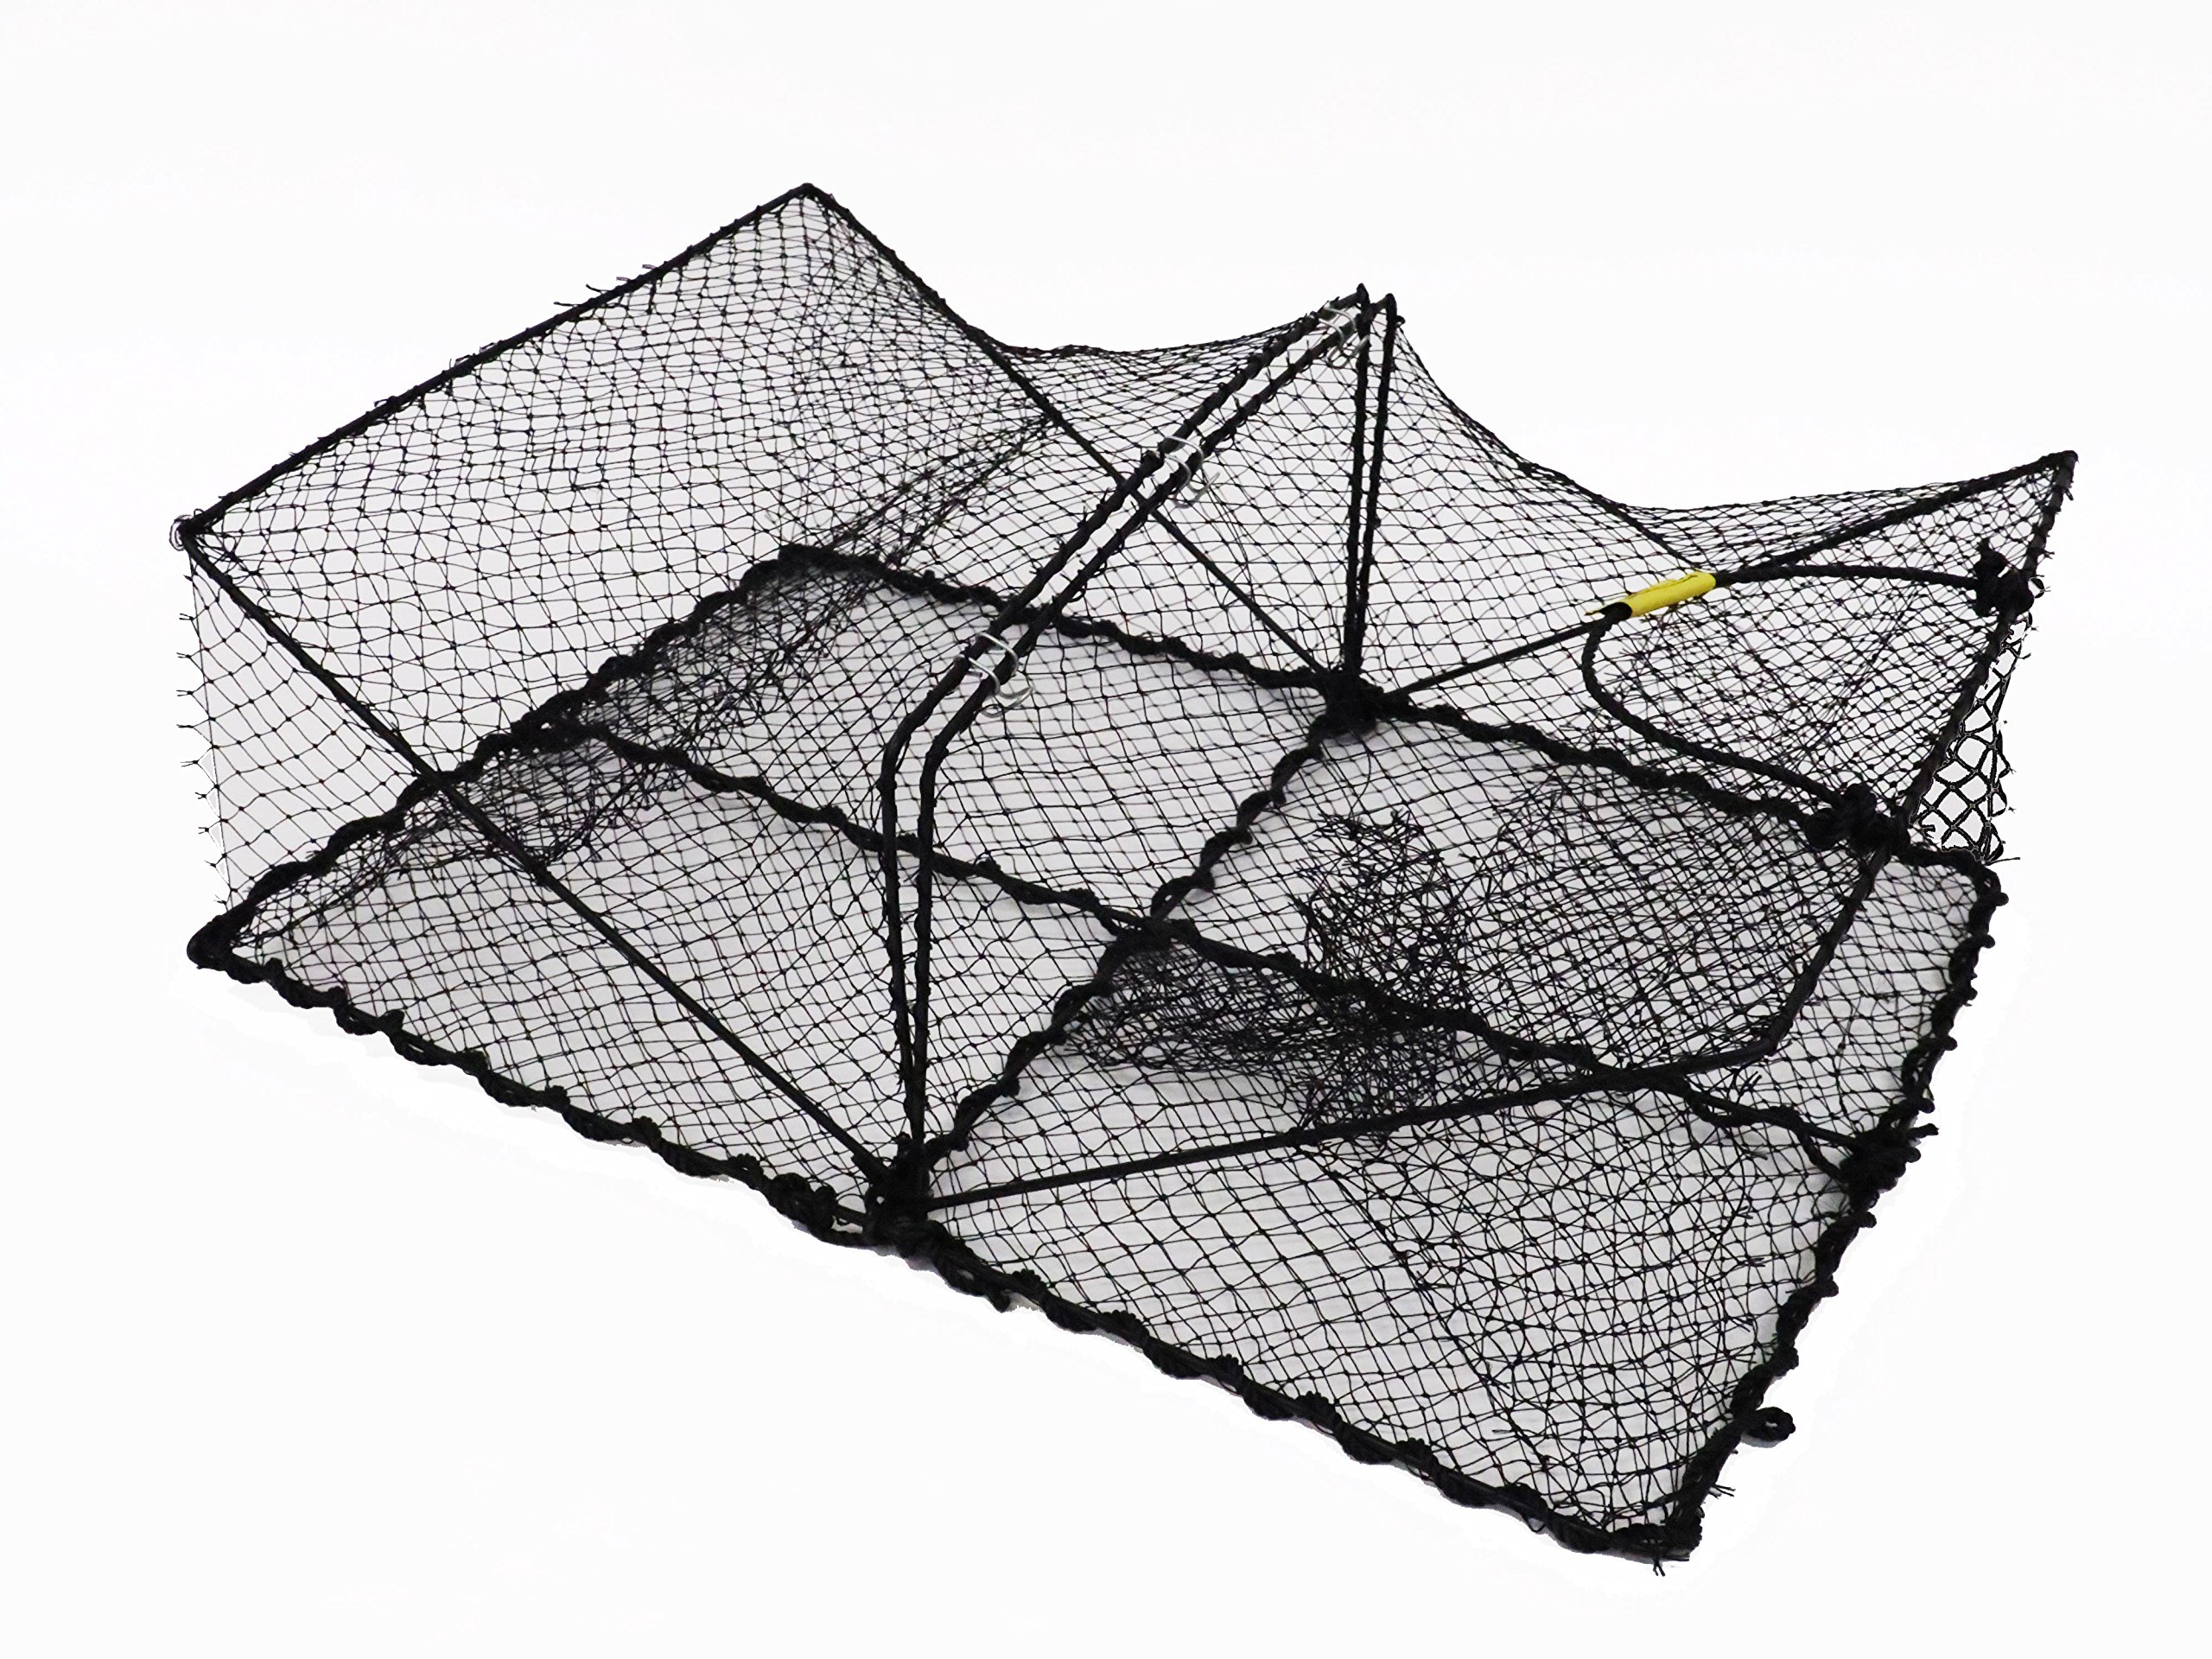 Promar Collapsible Crawfish/Crab Trap 24''x18''x8'' - American Maple Inc TR-101, Fishing Accessories